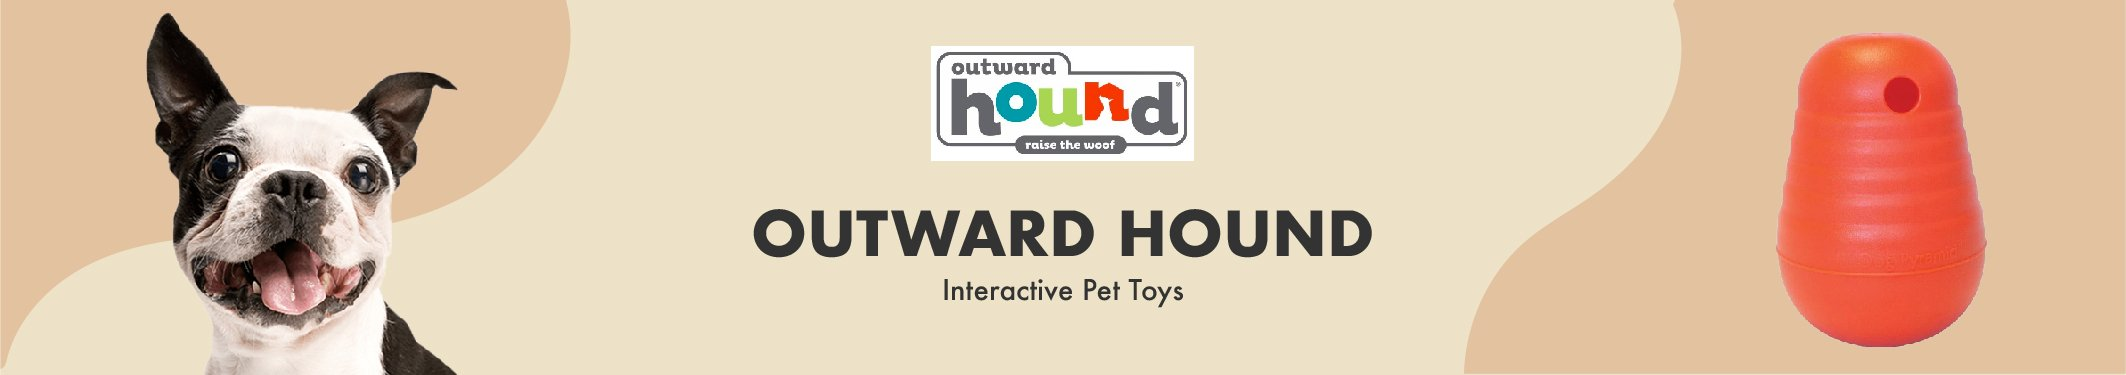 Outward Hound Interactive Pet Toys